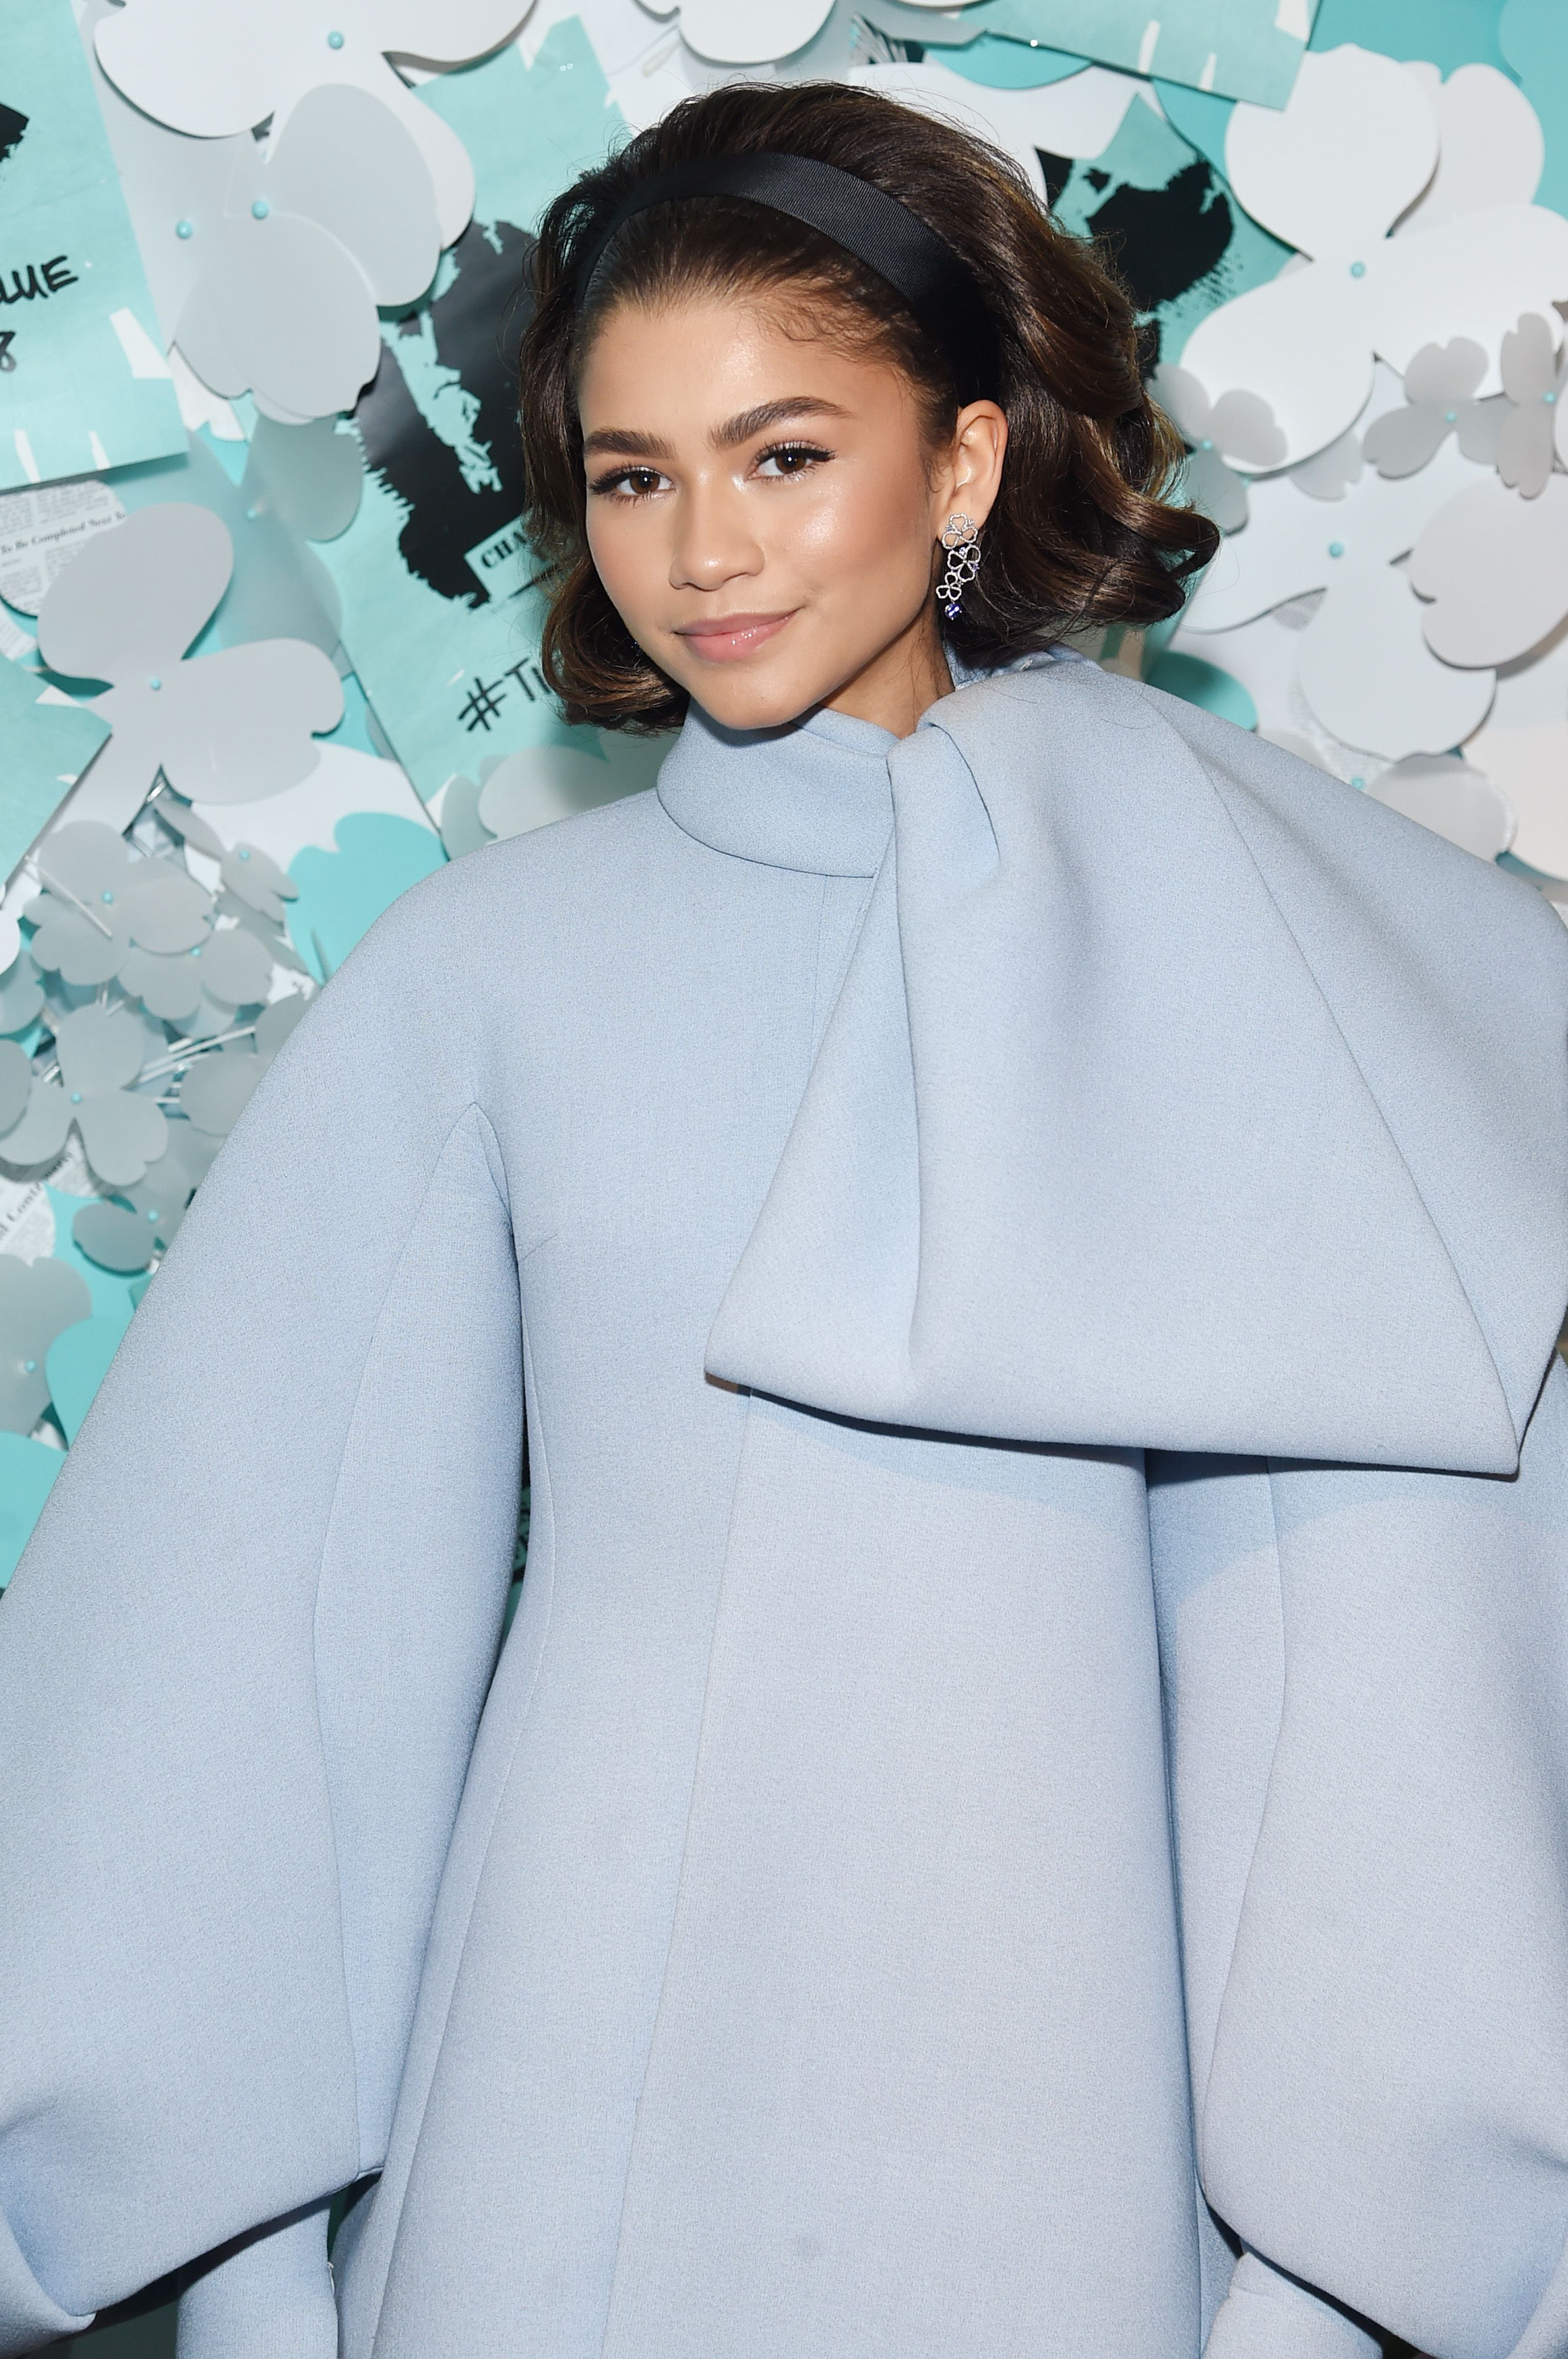 Zendaya Coleman on Why She Auditions for White Roles